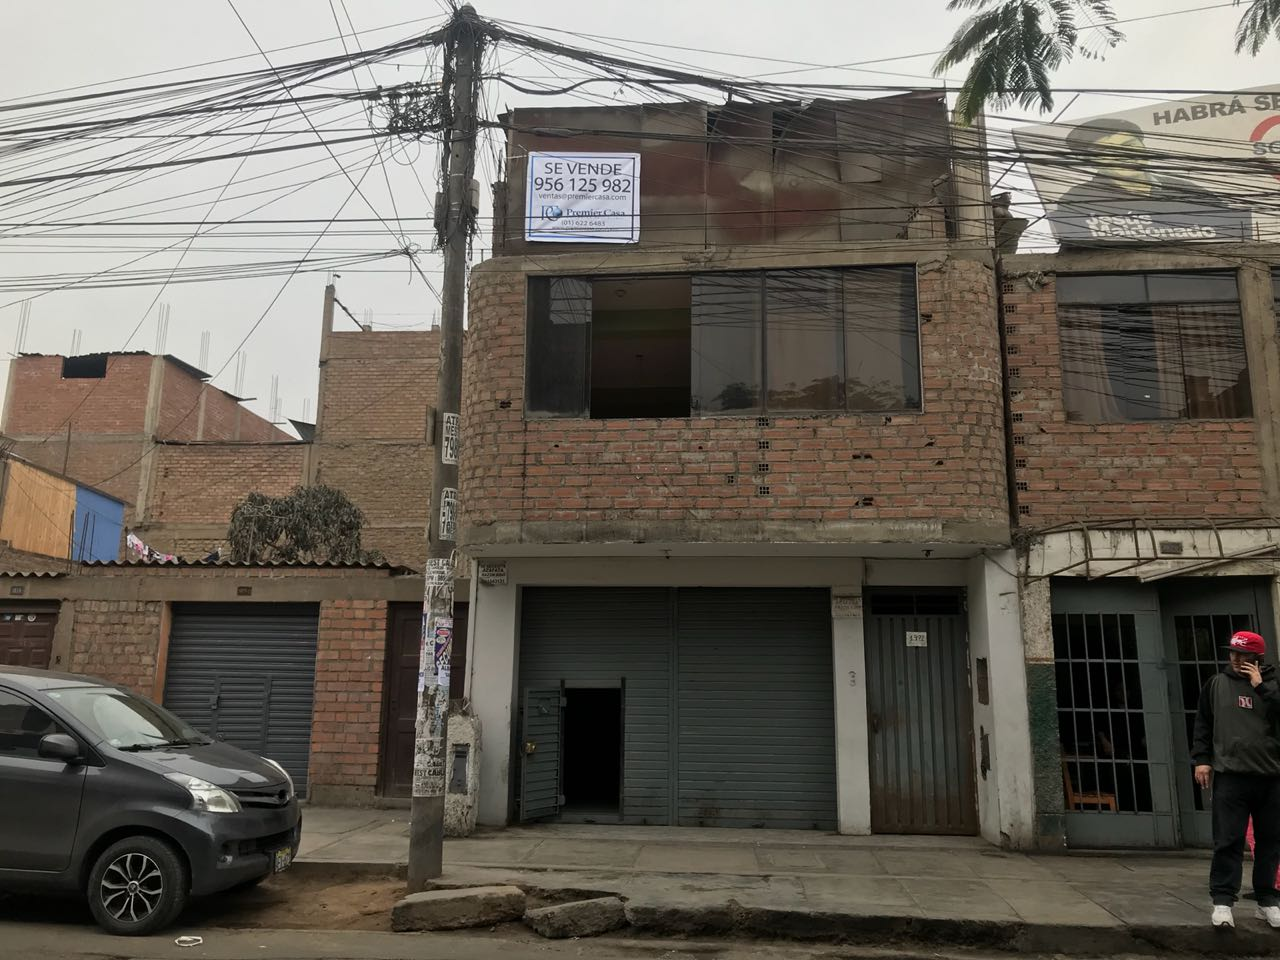 2 LEVEL COMMERCIAL AND RESIDENTIAL BUILDING, SAN JUAN DE LURIGANCHO